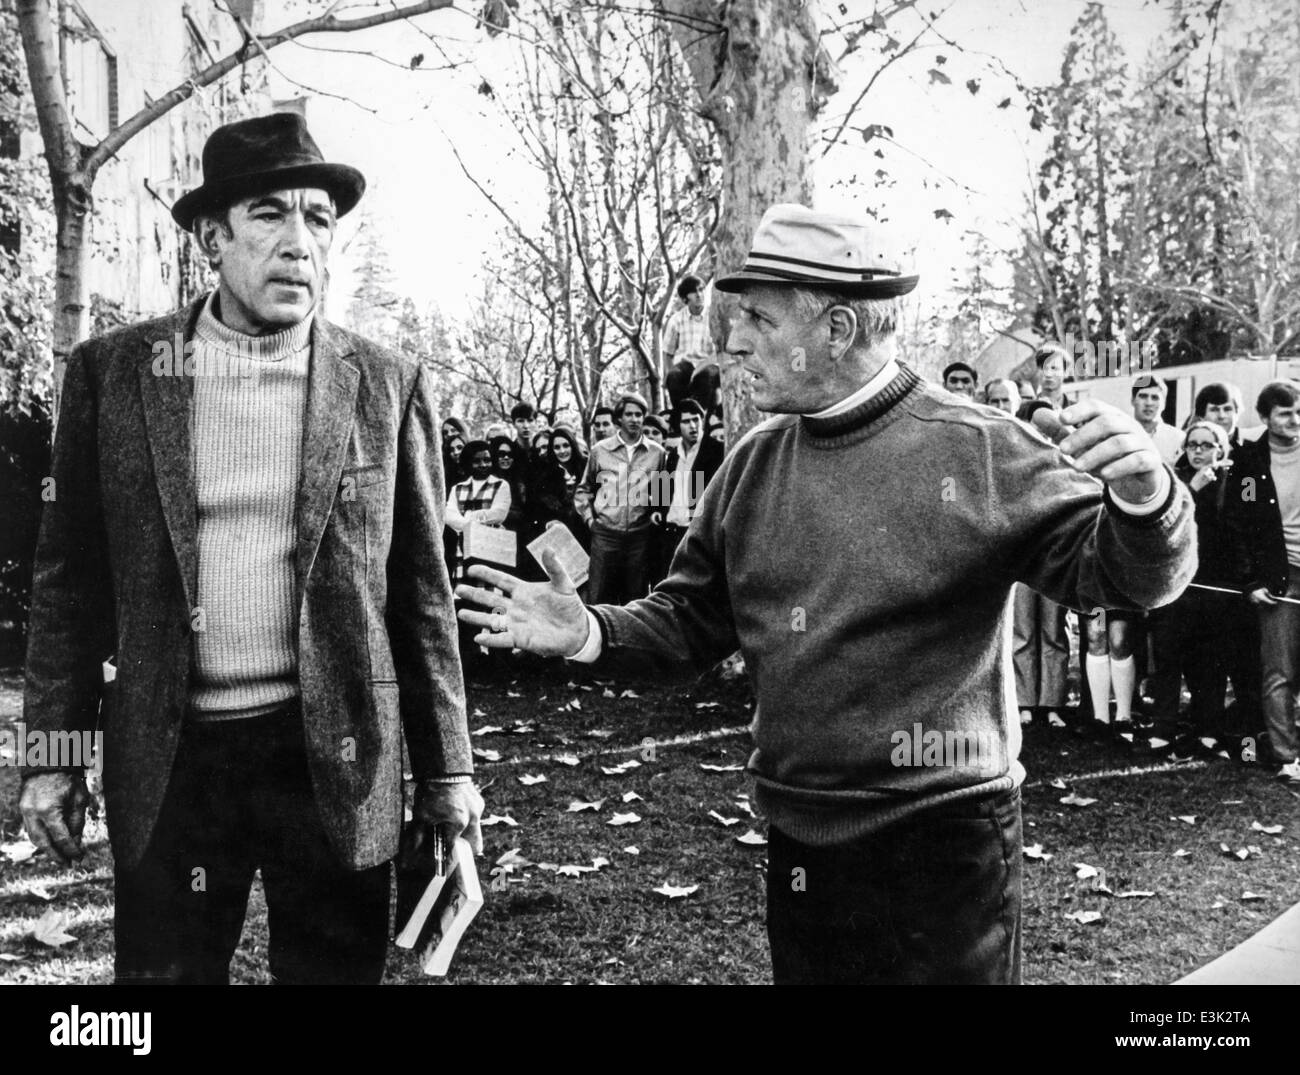 anthony queen and stanley kramer,during the filming of the movie R.P.M.,1970 - Stock Image